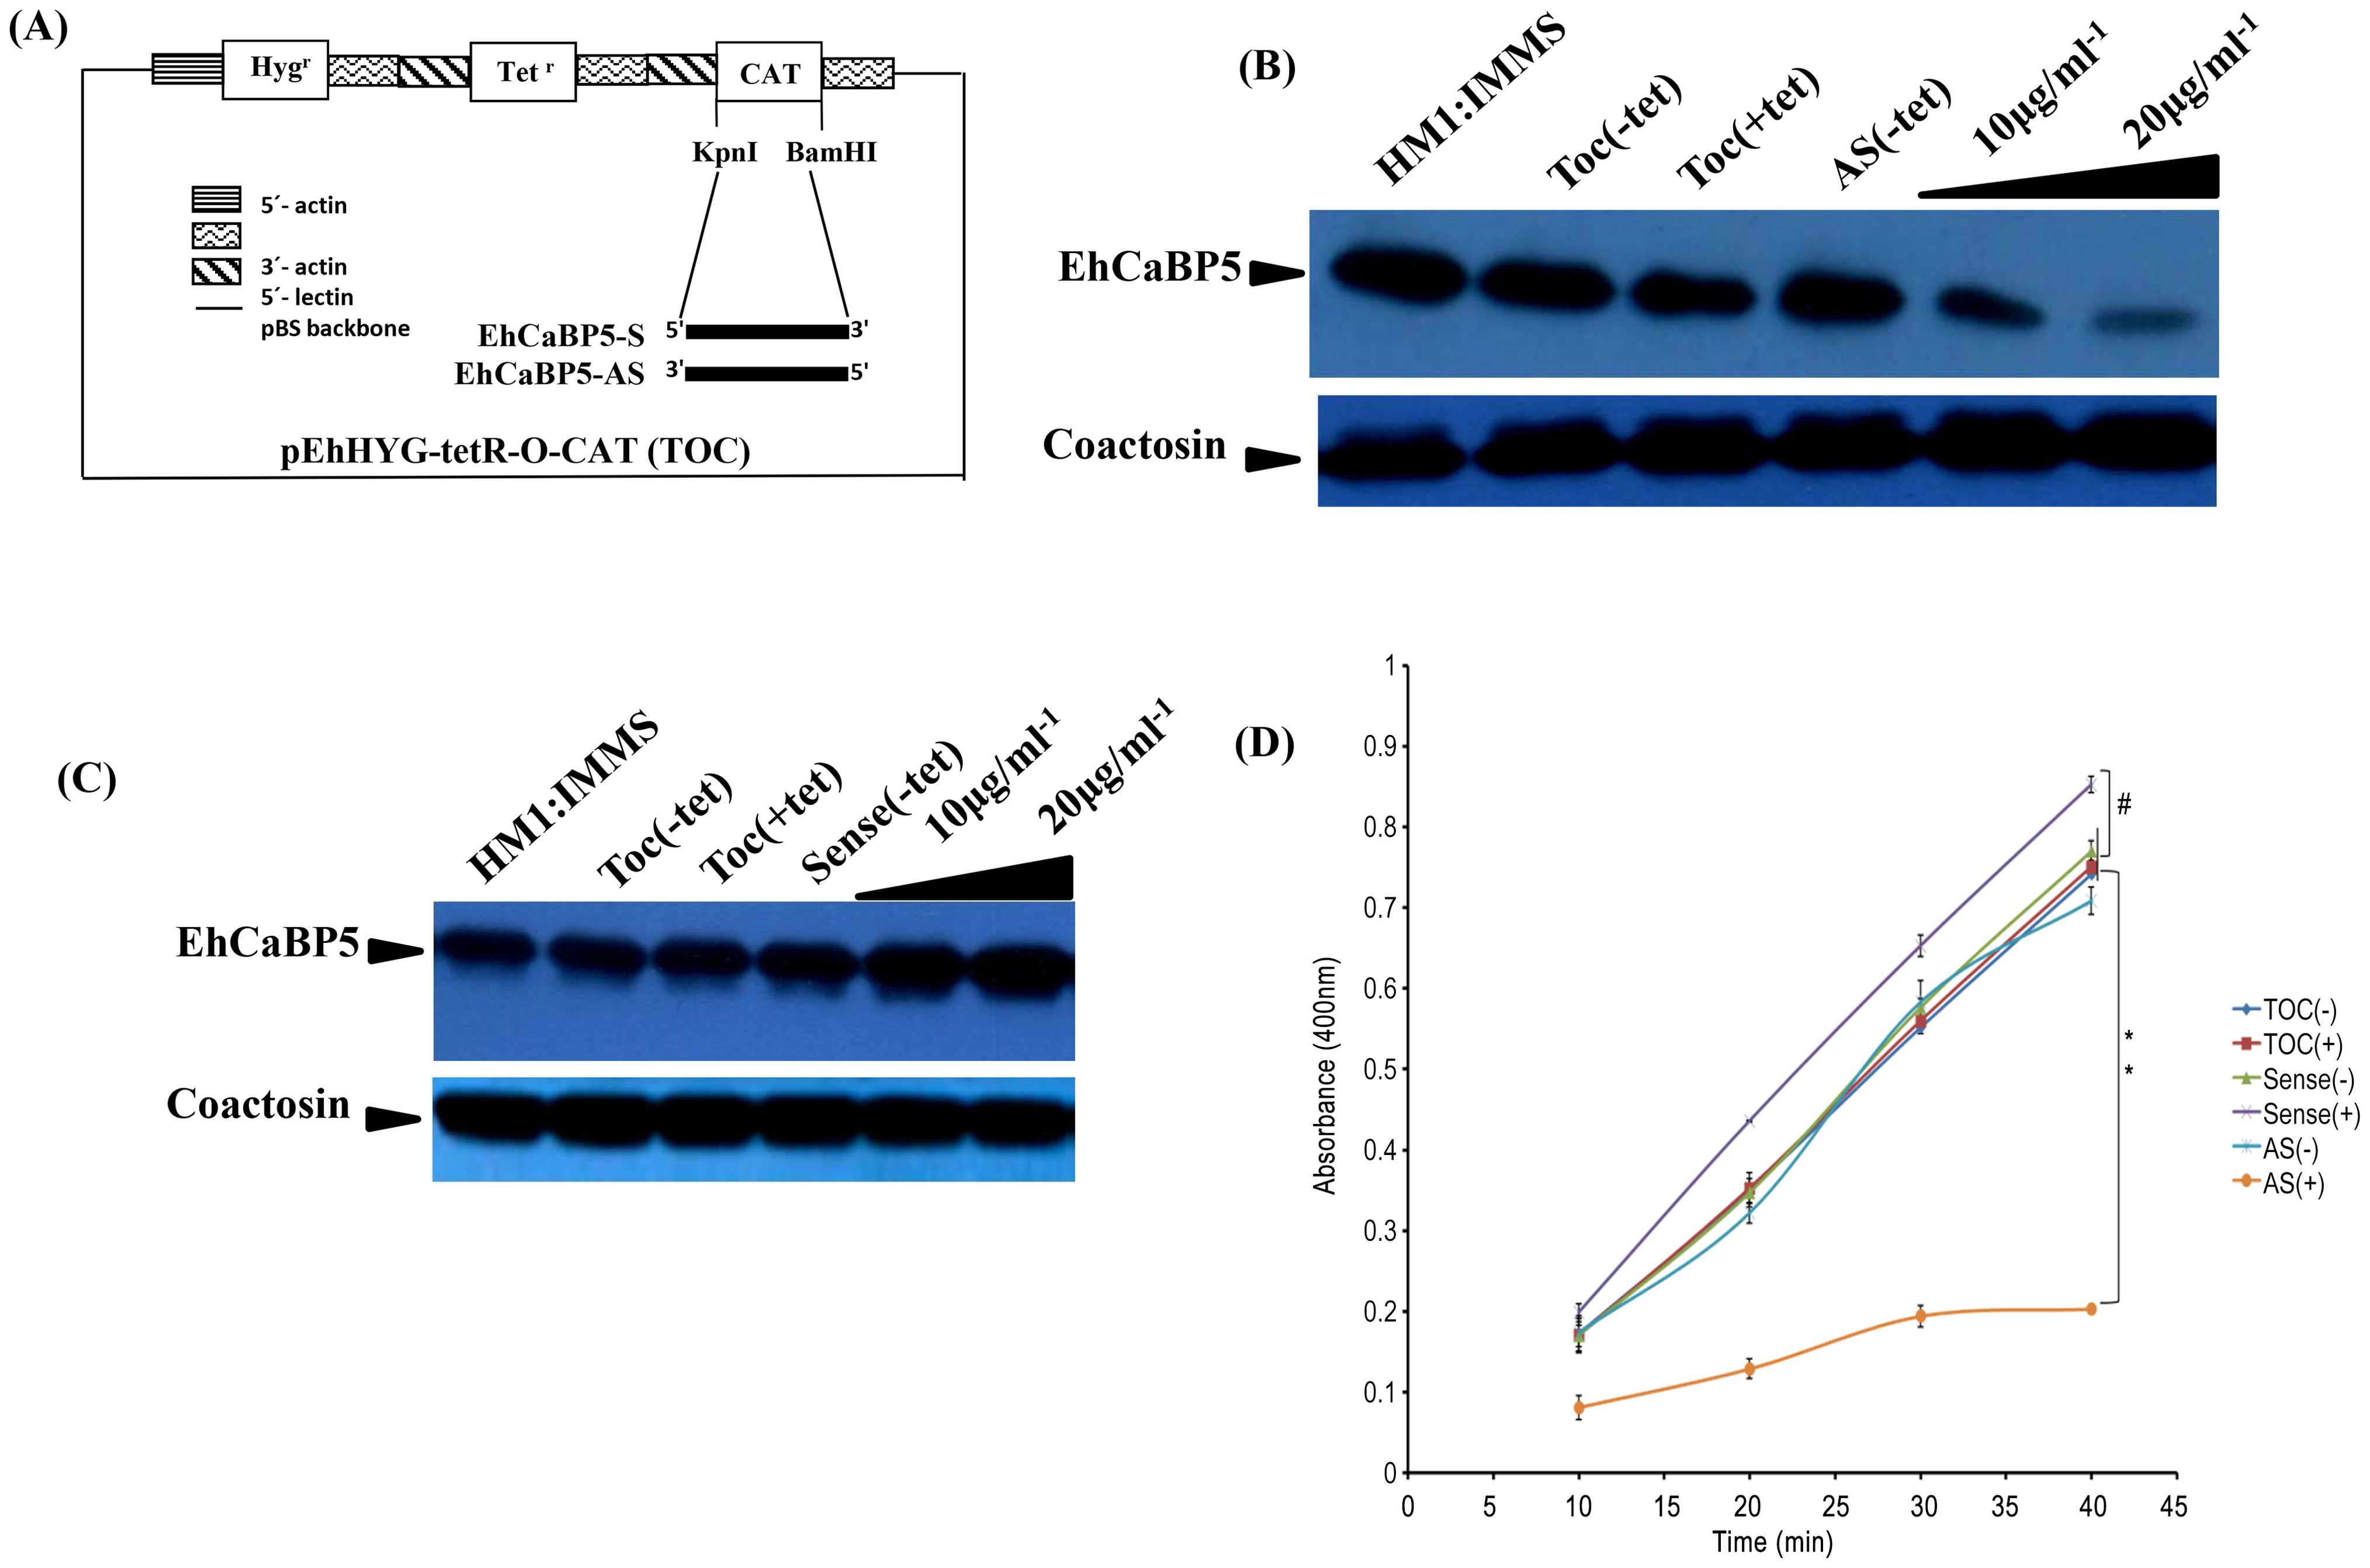 Down regulation of EhCaBP5 reduces the rate of phagocytosis.